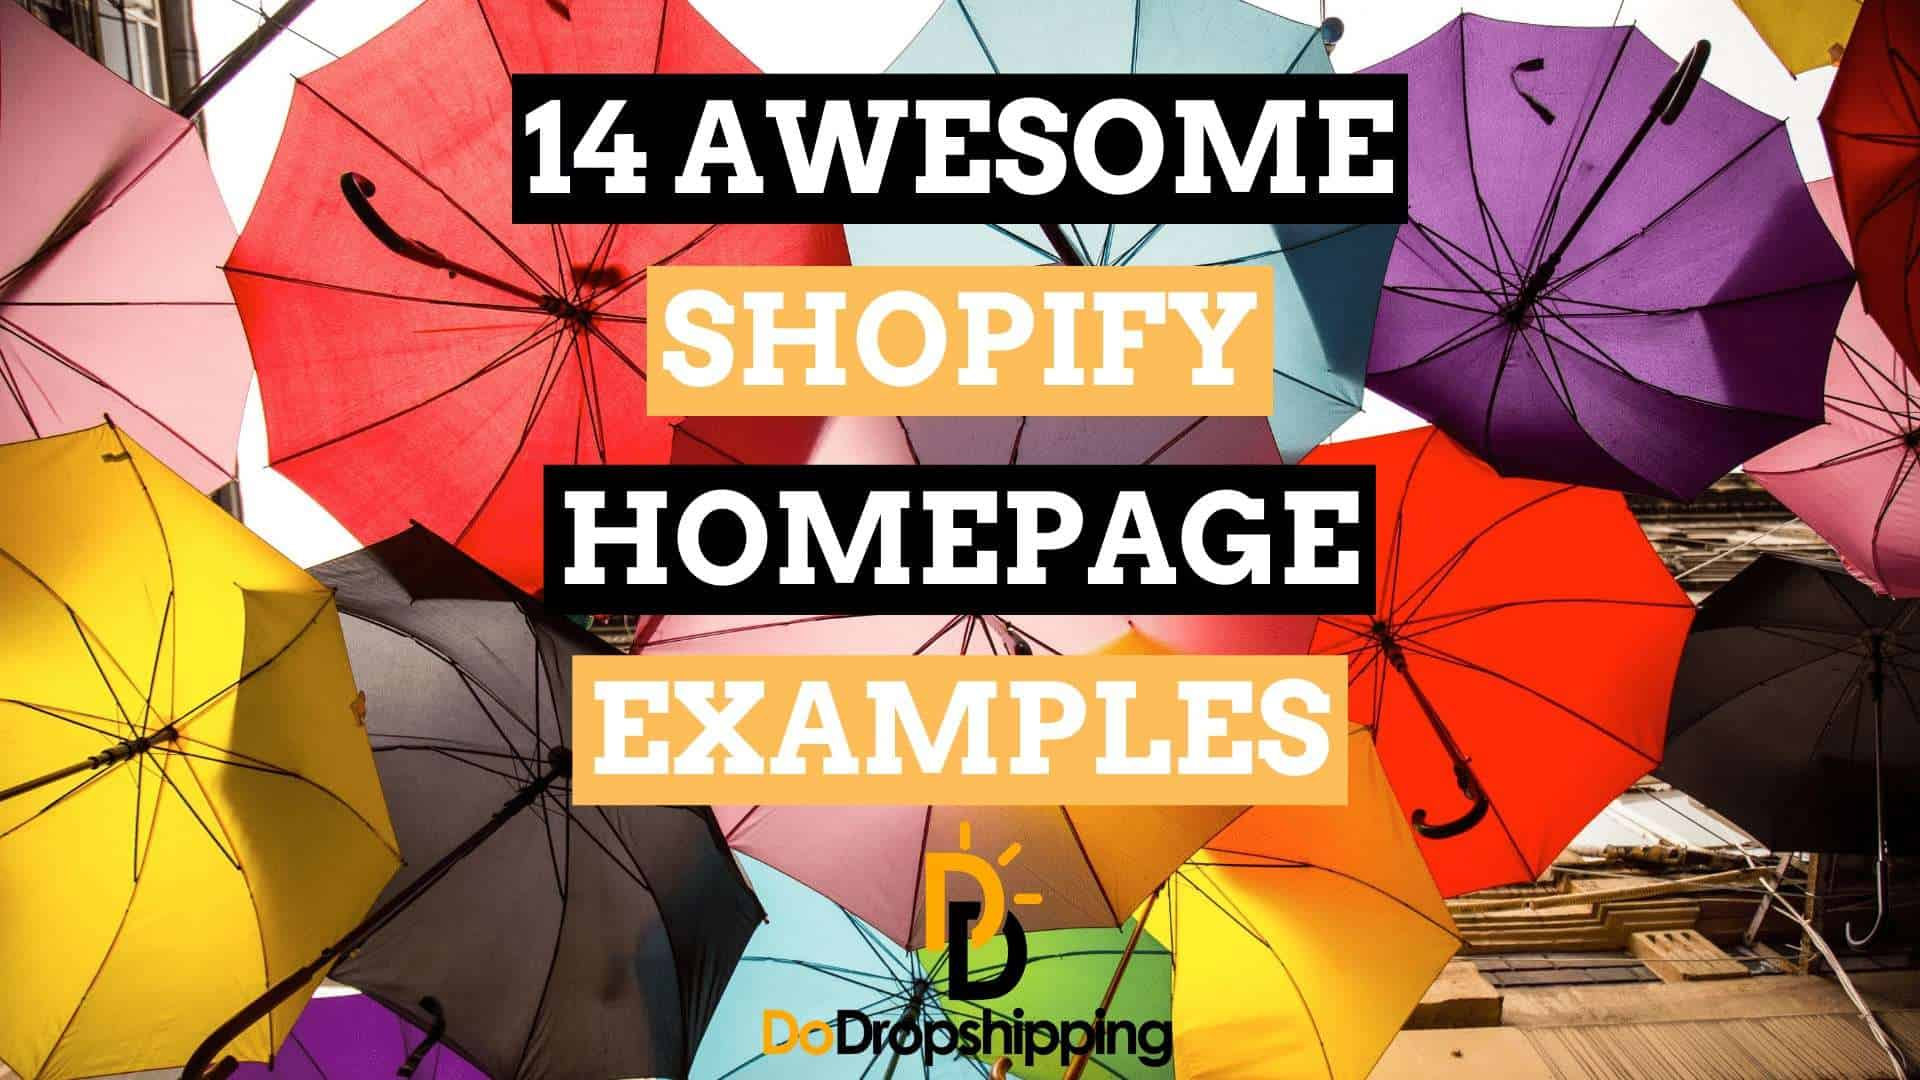 12 Awesome Shopify Homepage Examples in 2019 | To Get Inspiration